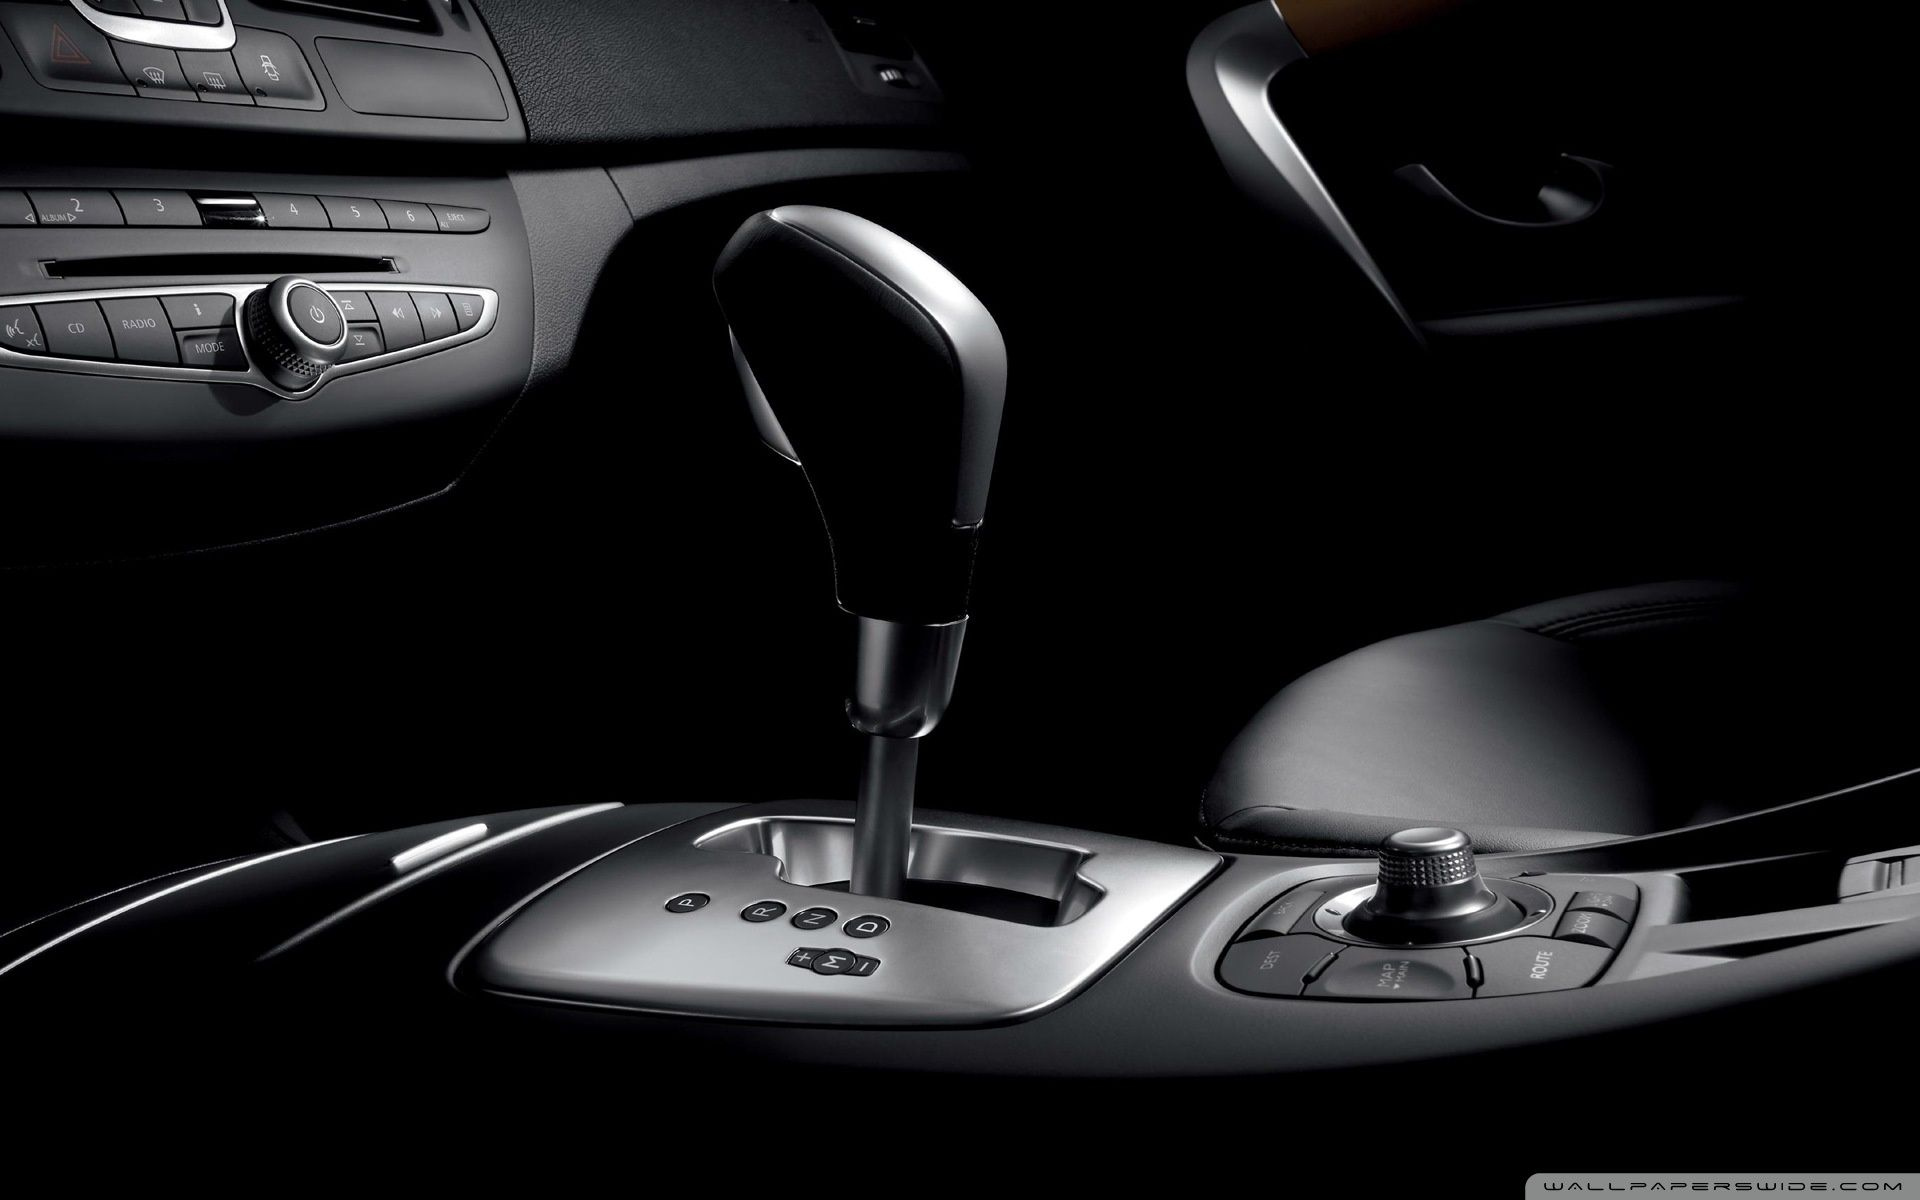 Car Interior 27 HD desktop wallpaper : Widescreen : High ...